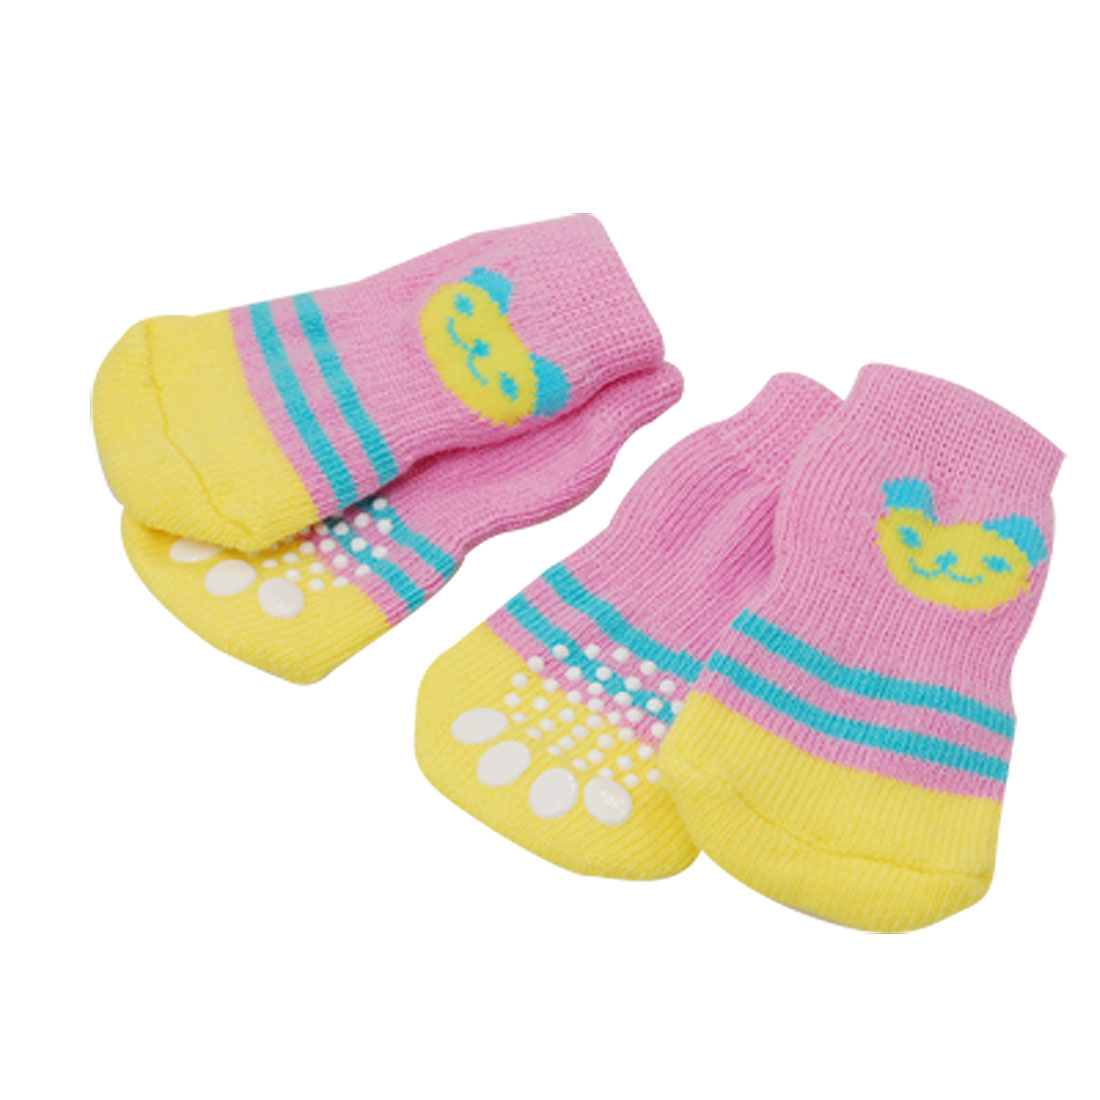 4 PCS Pet Dog Nonskid Pink Yellow Soft Size L Socks